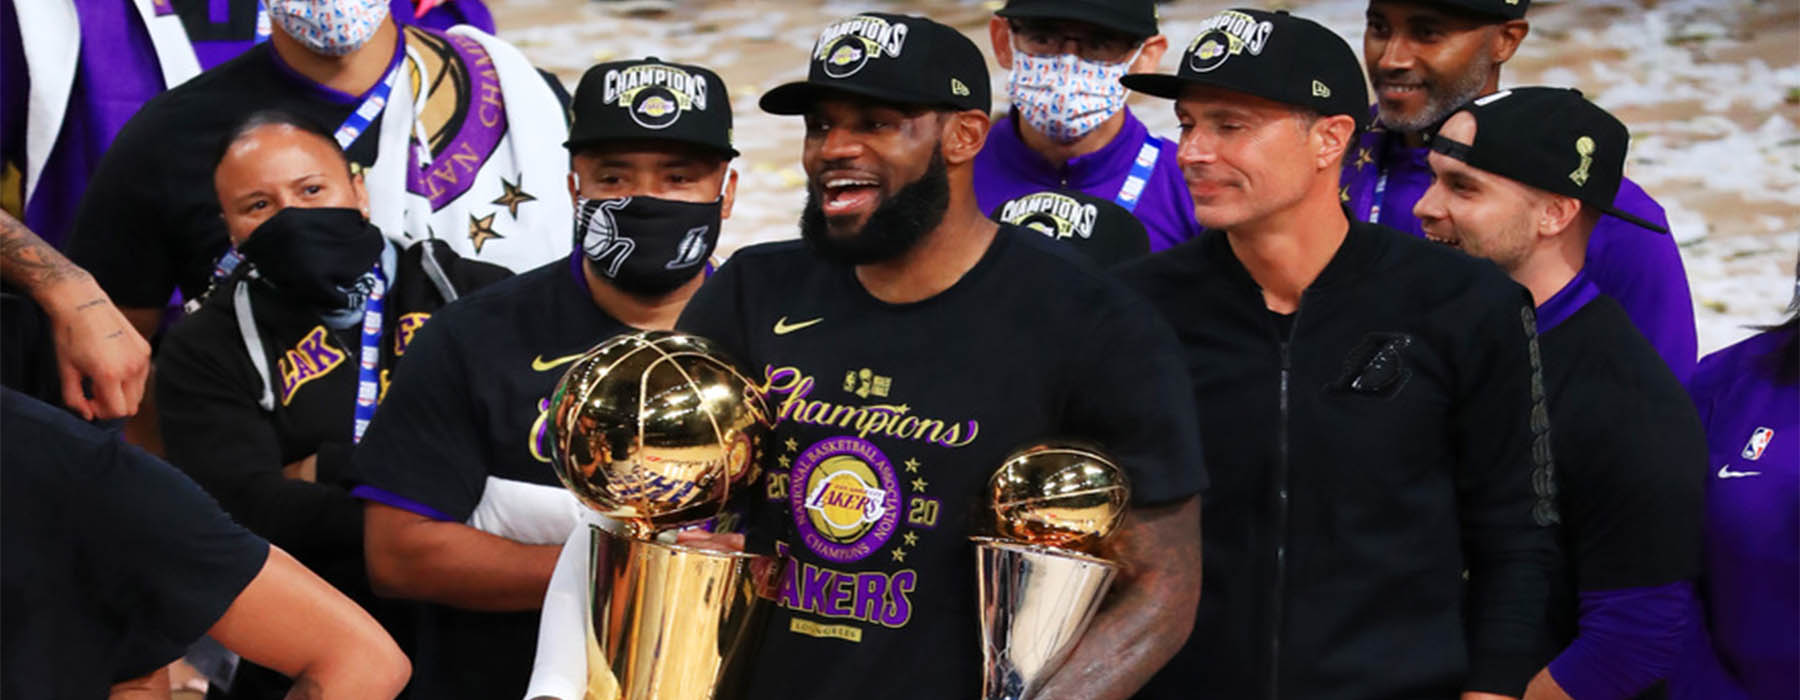 LAKERS CHAMPION